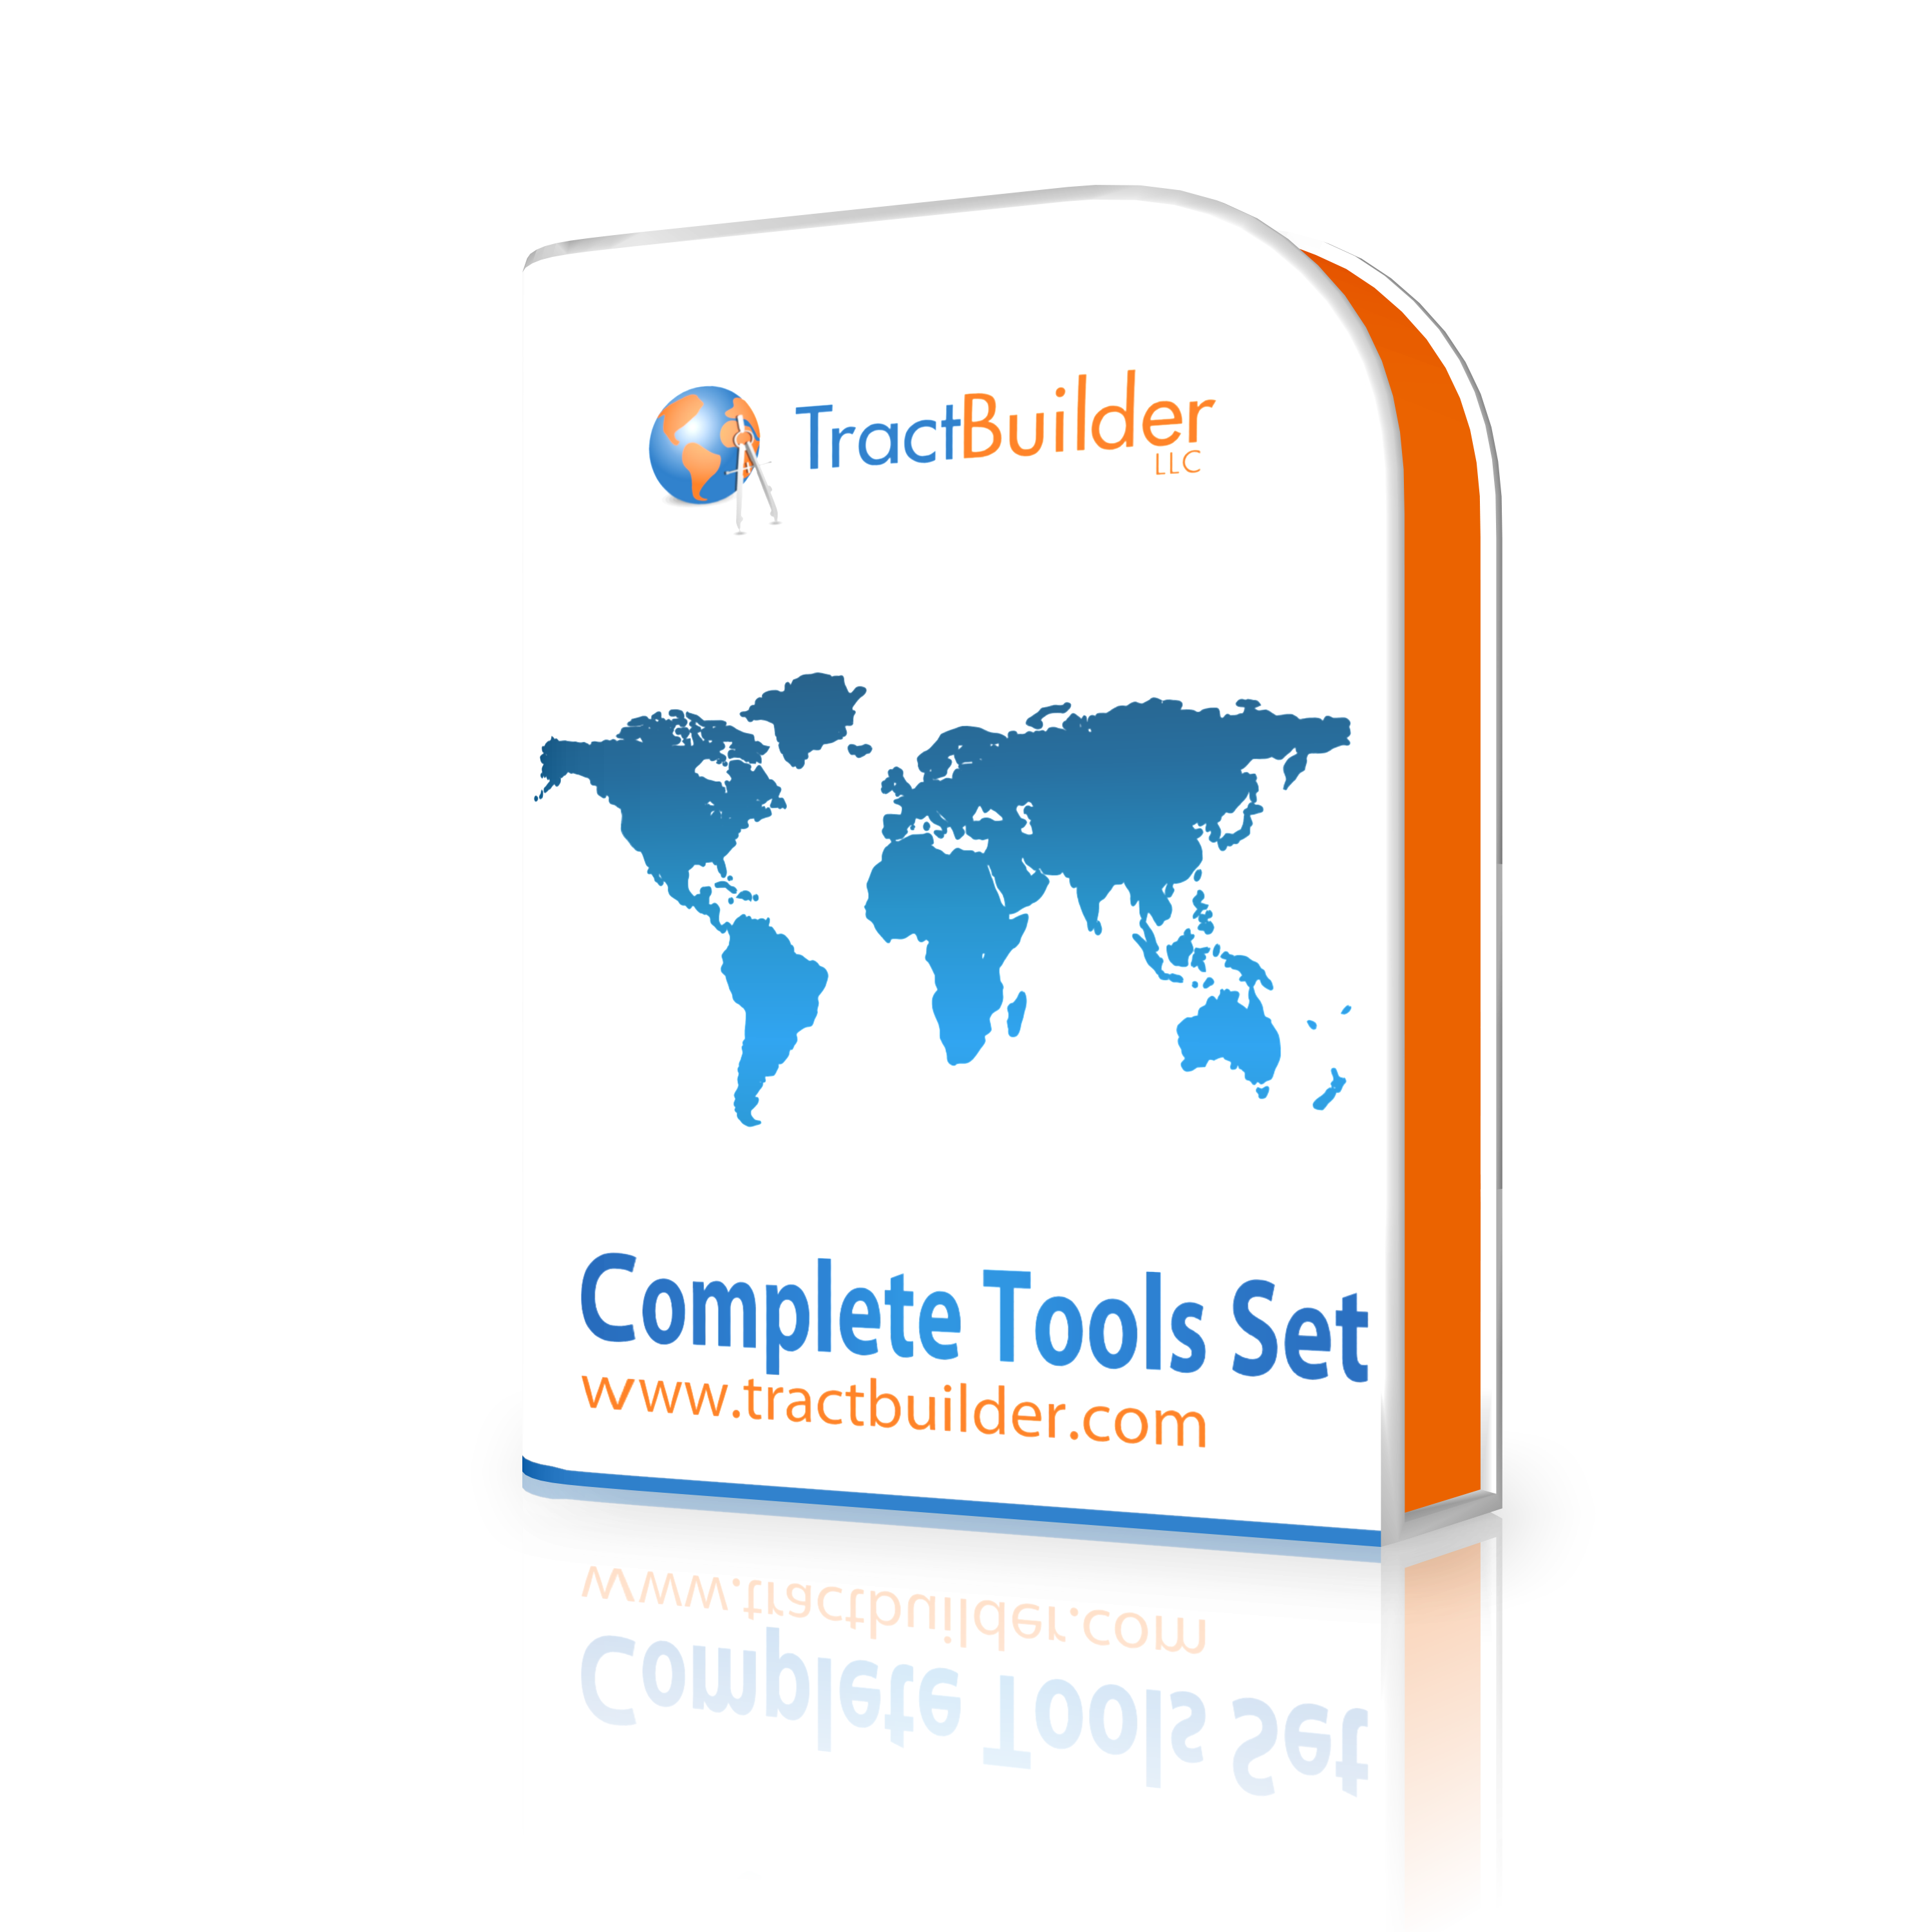 This package includes the TractBuilder Metes & Bounds Tool, Quartering Tool, Auto-Quartering Tool, Well Spotting Tool, and GridMaker.  The Metes & Bounds Tool simplifies the process of drafting mapping features based…